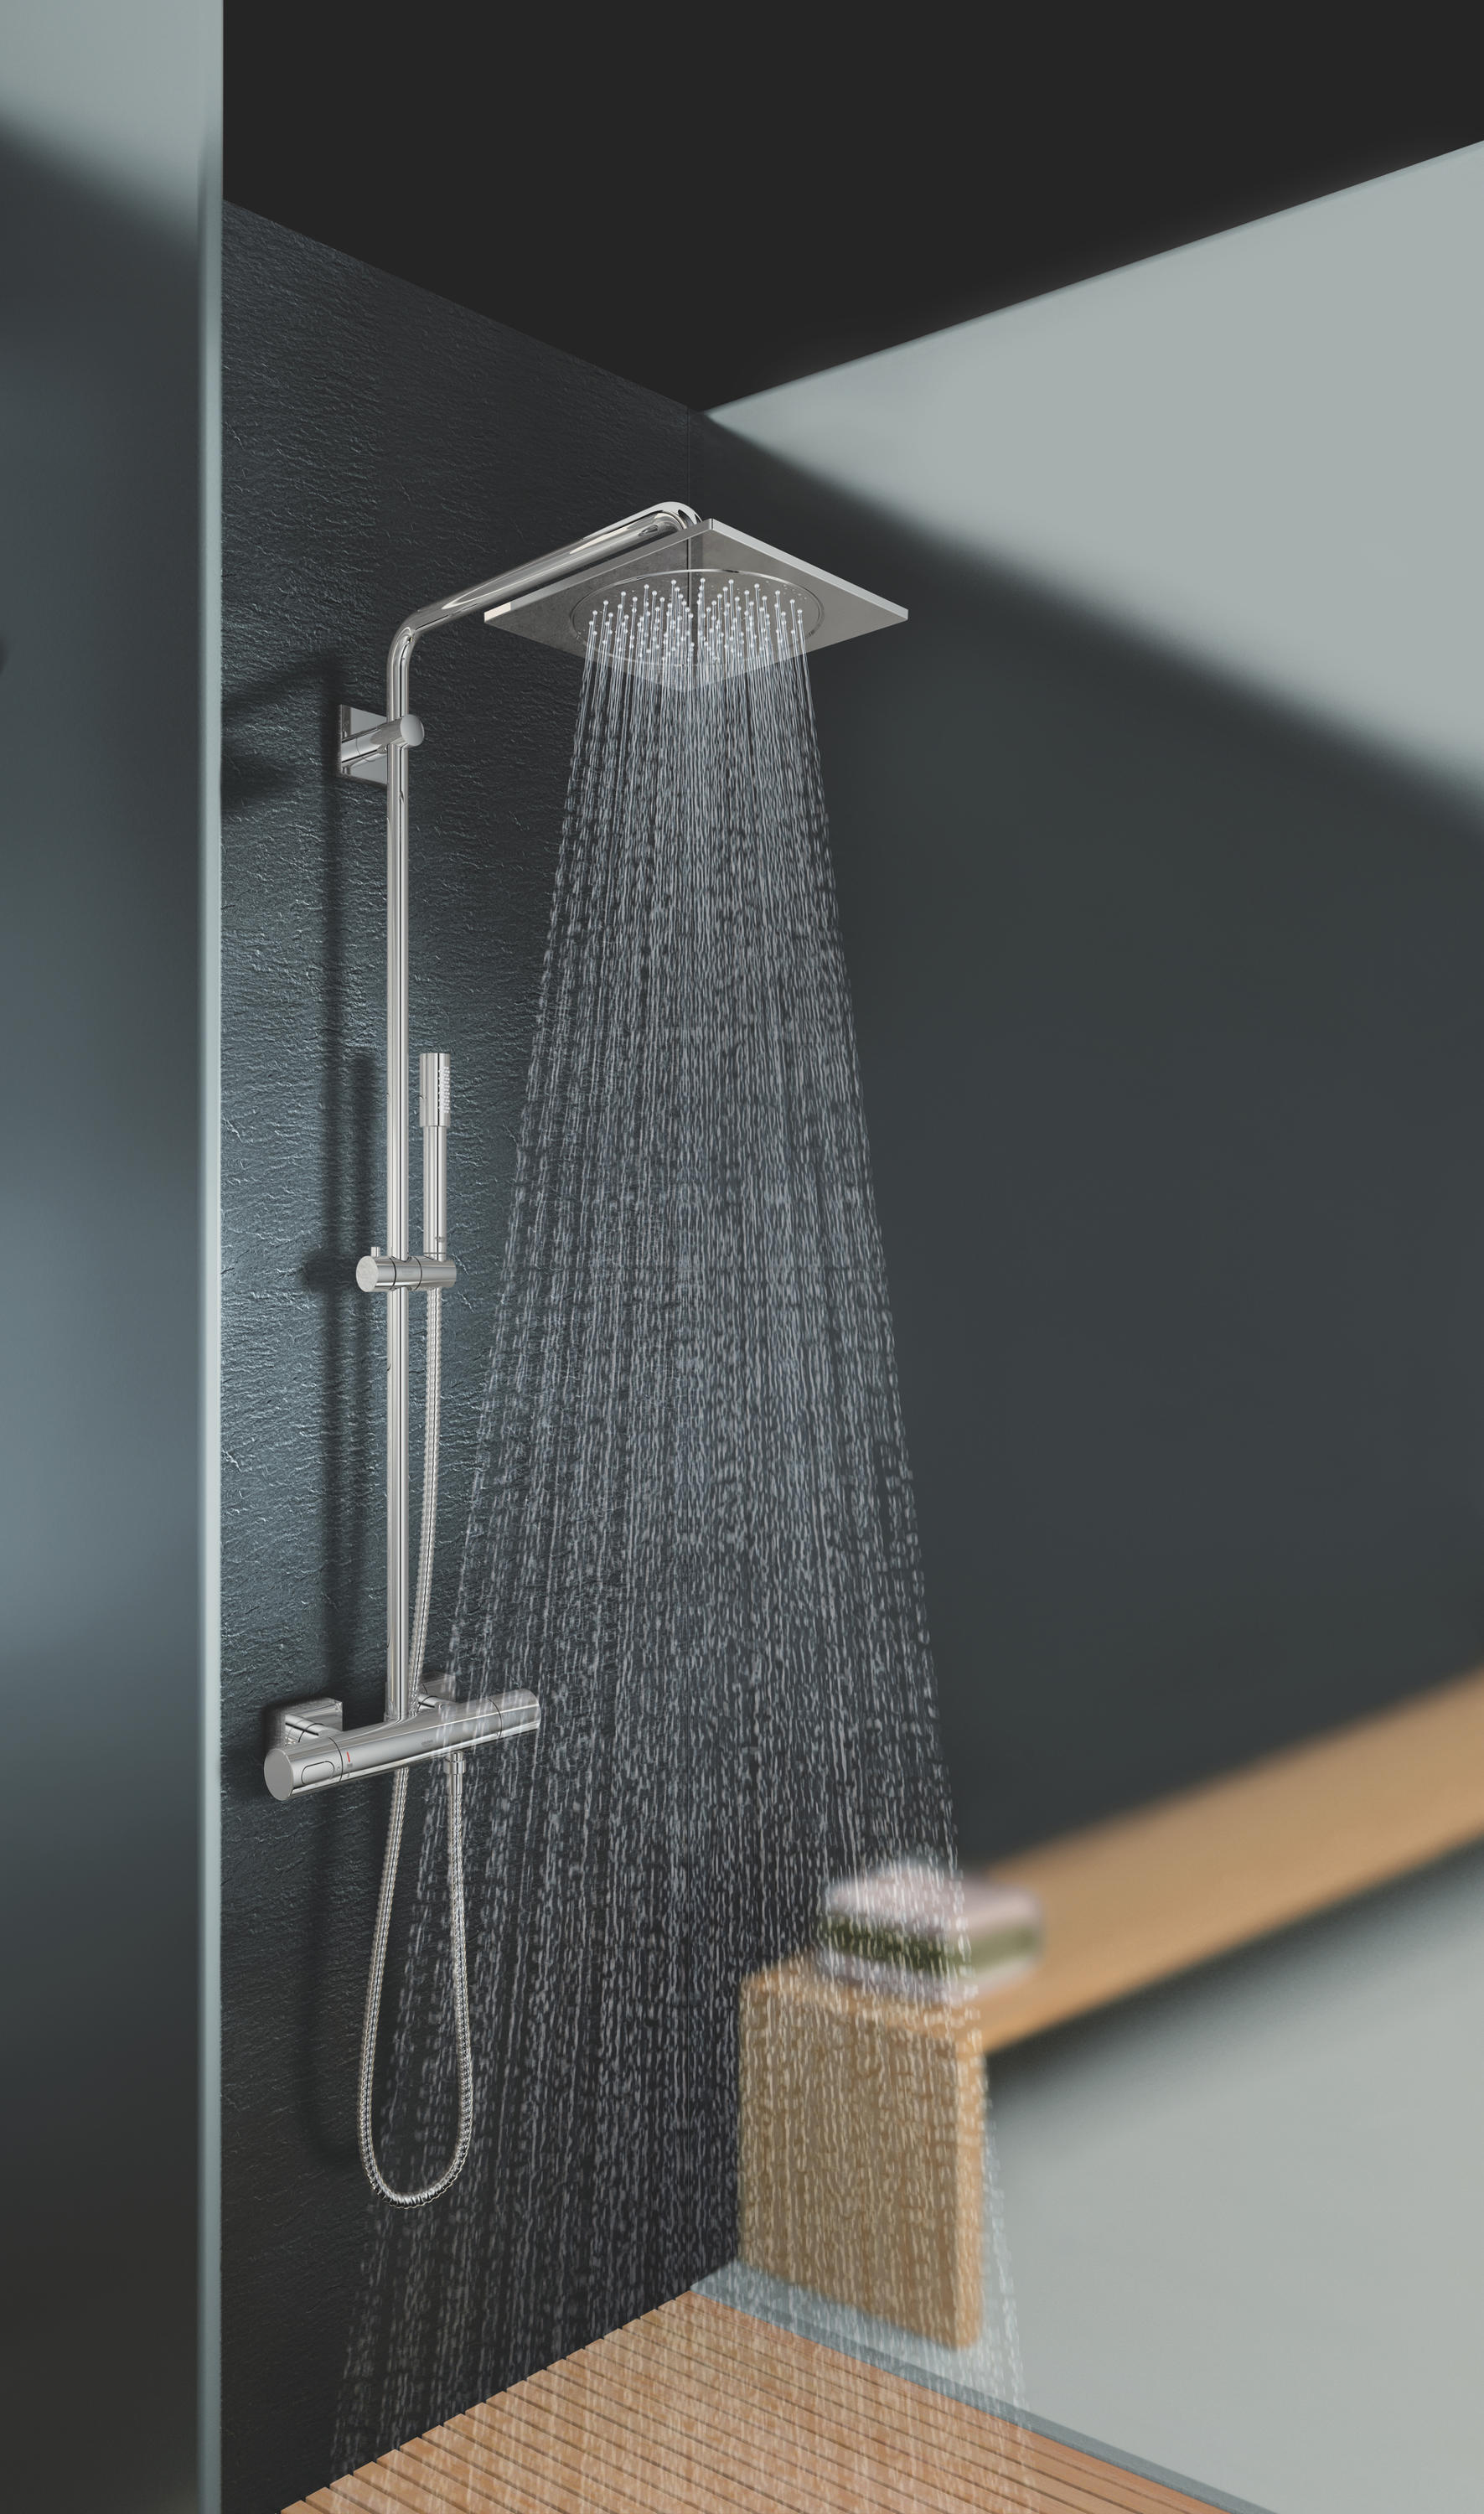 rainshower review head rain chrome mixer of hindi luxury sky system flush recessed showers series grohe synonym hand rainfall meaning combo in chromeluxuryrainmixershowercombosetwall architecture wall heads body att sprays ceiling idiom bathroom mounted price brands high end shower sensory set